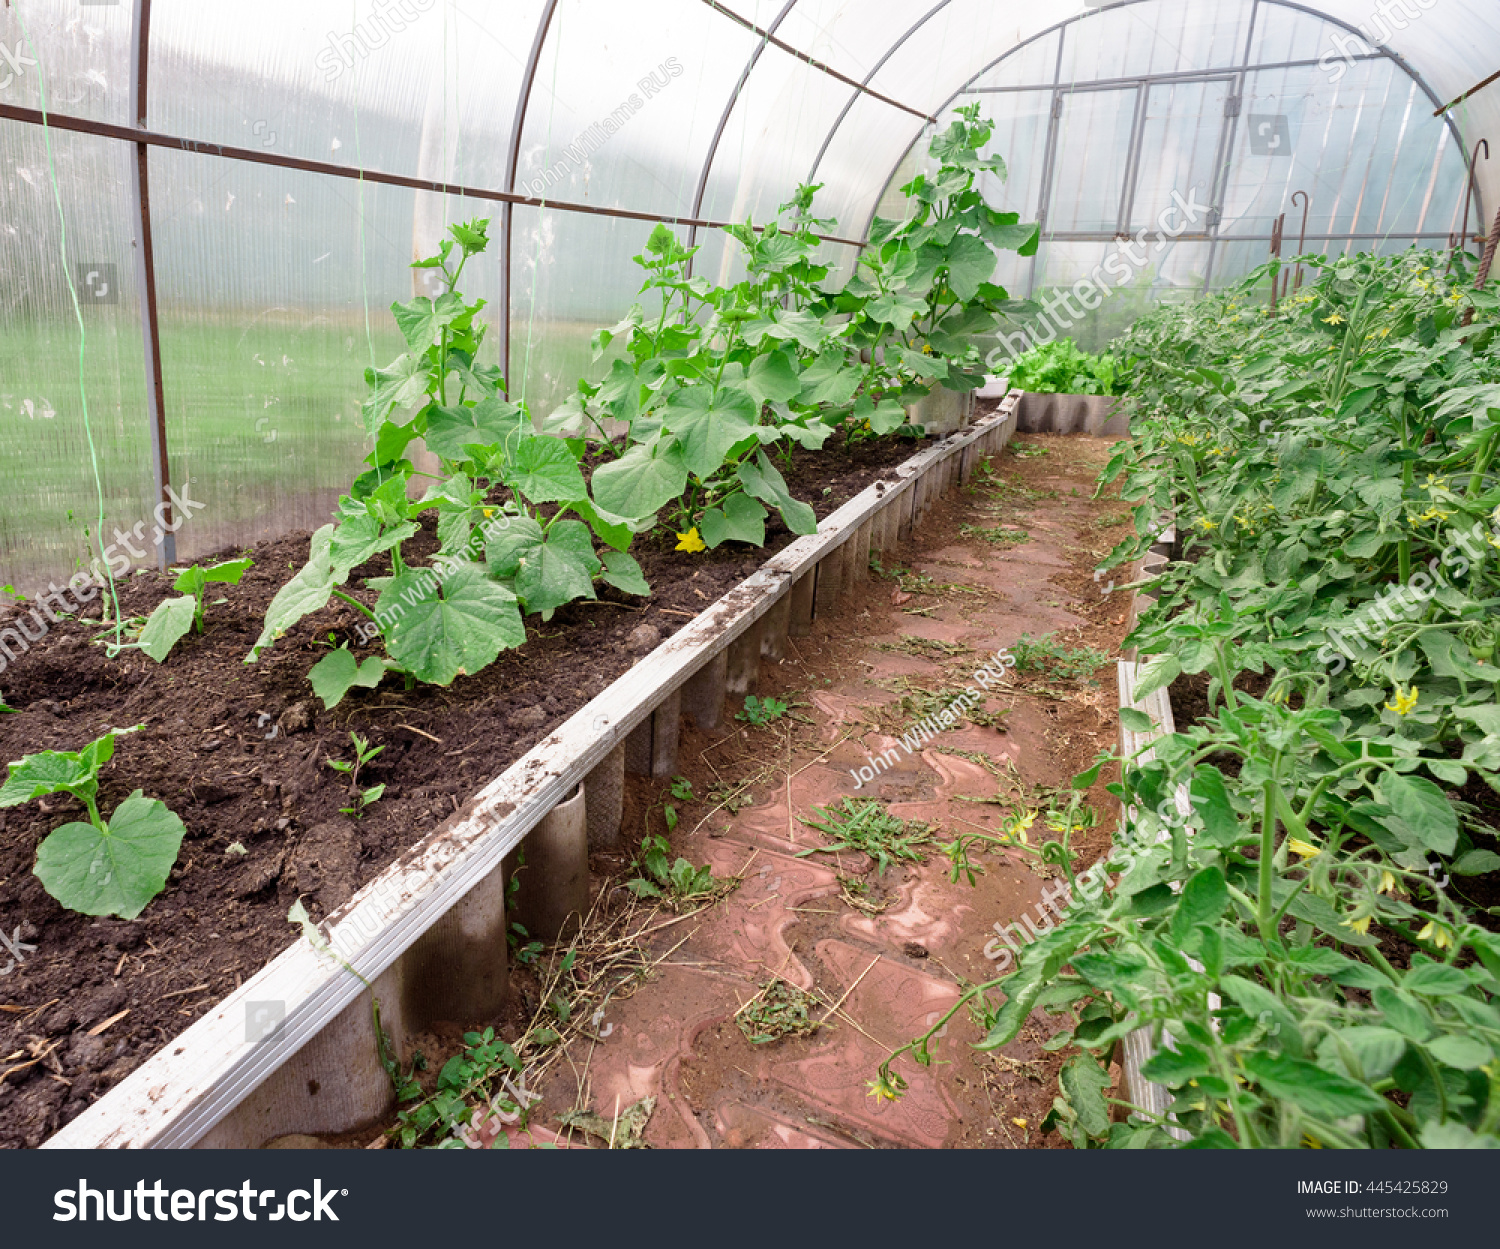 What to plant in a greenhouse Compatible and incompatible vegetables. Greenhouse for cucumbers